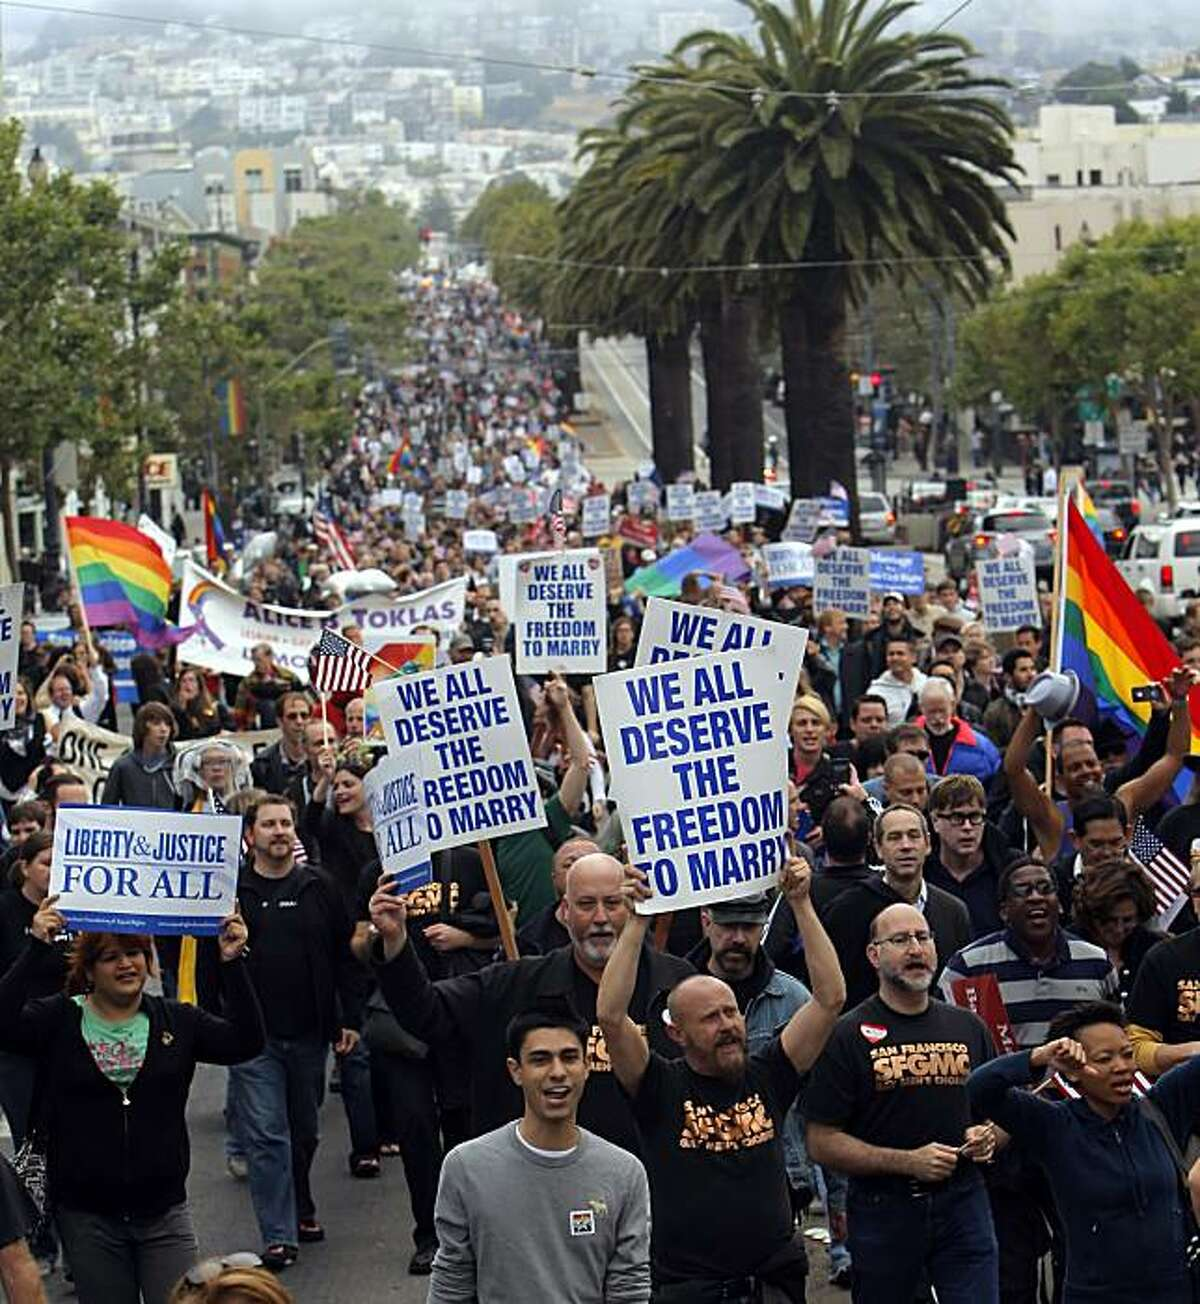 Supporters of same-sex marriage marched from the Castro District of San Francisco, Calif., to celebrate a federal judge's ruling that Proposition 8 was unconstitutional and was being struck down on Wednesday, August 4, 2010. Those gathered in the neighborhood marched to City Hall for a rally celebrating the decision.